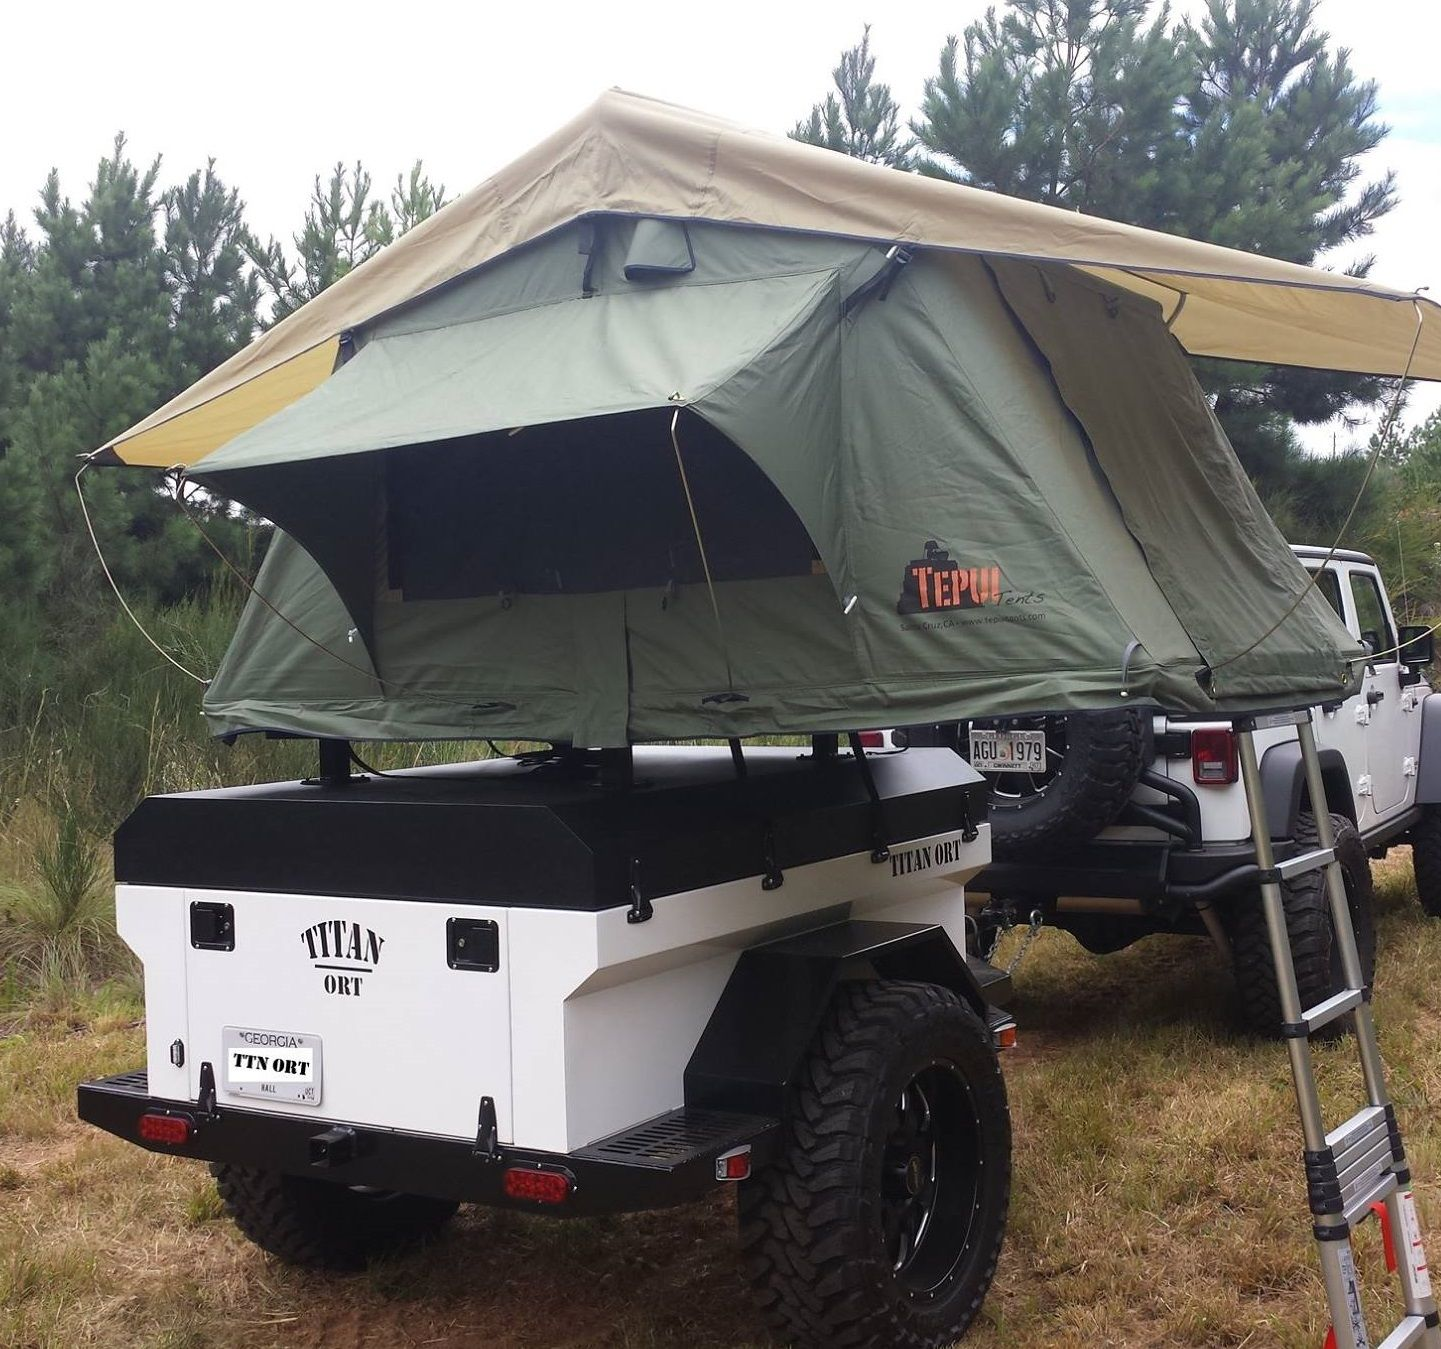 f Road Trailer Buyer s Guide Outdoor Gear Reviews